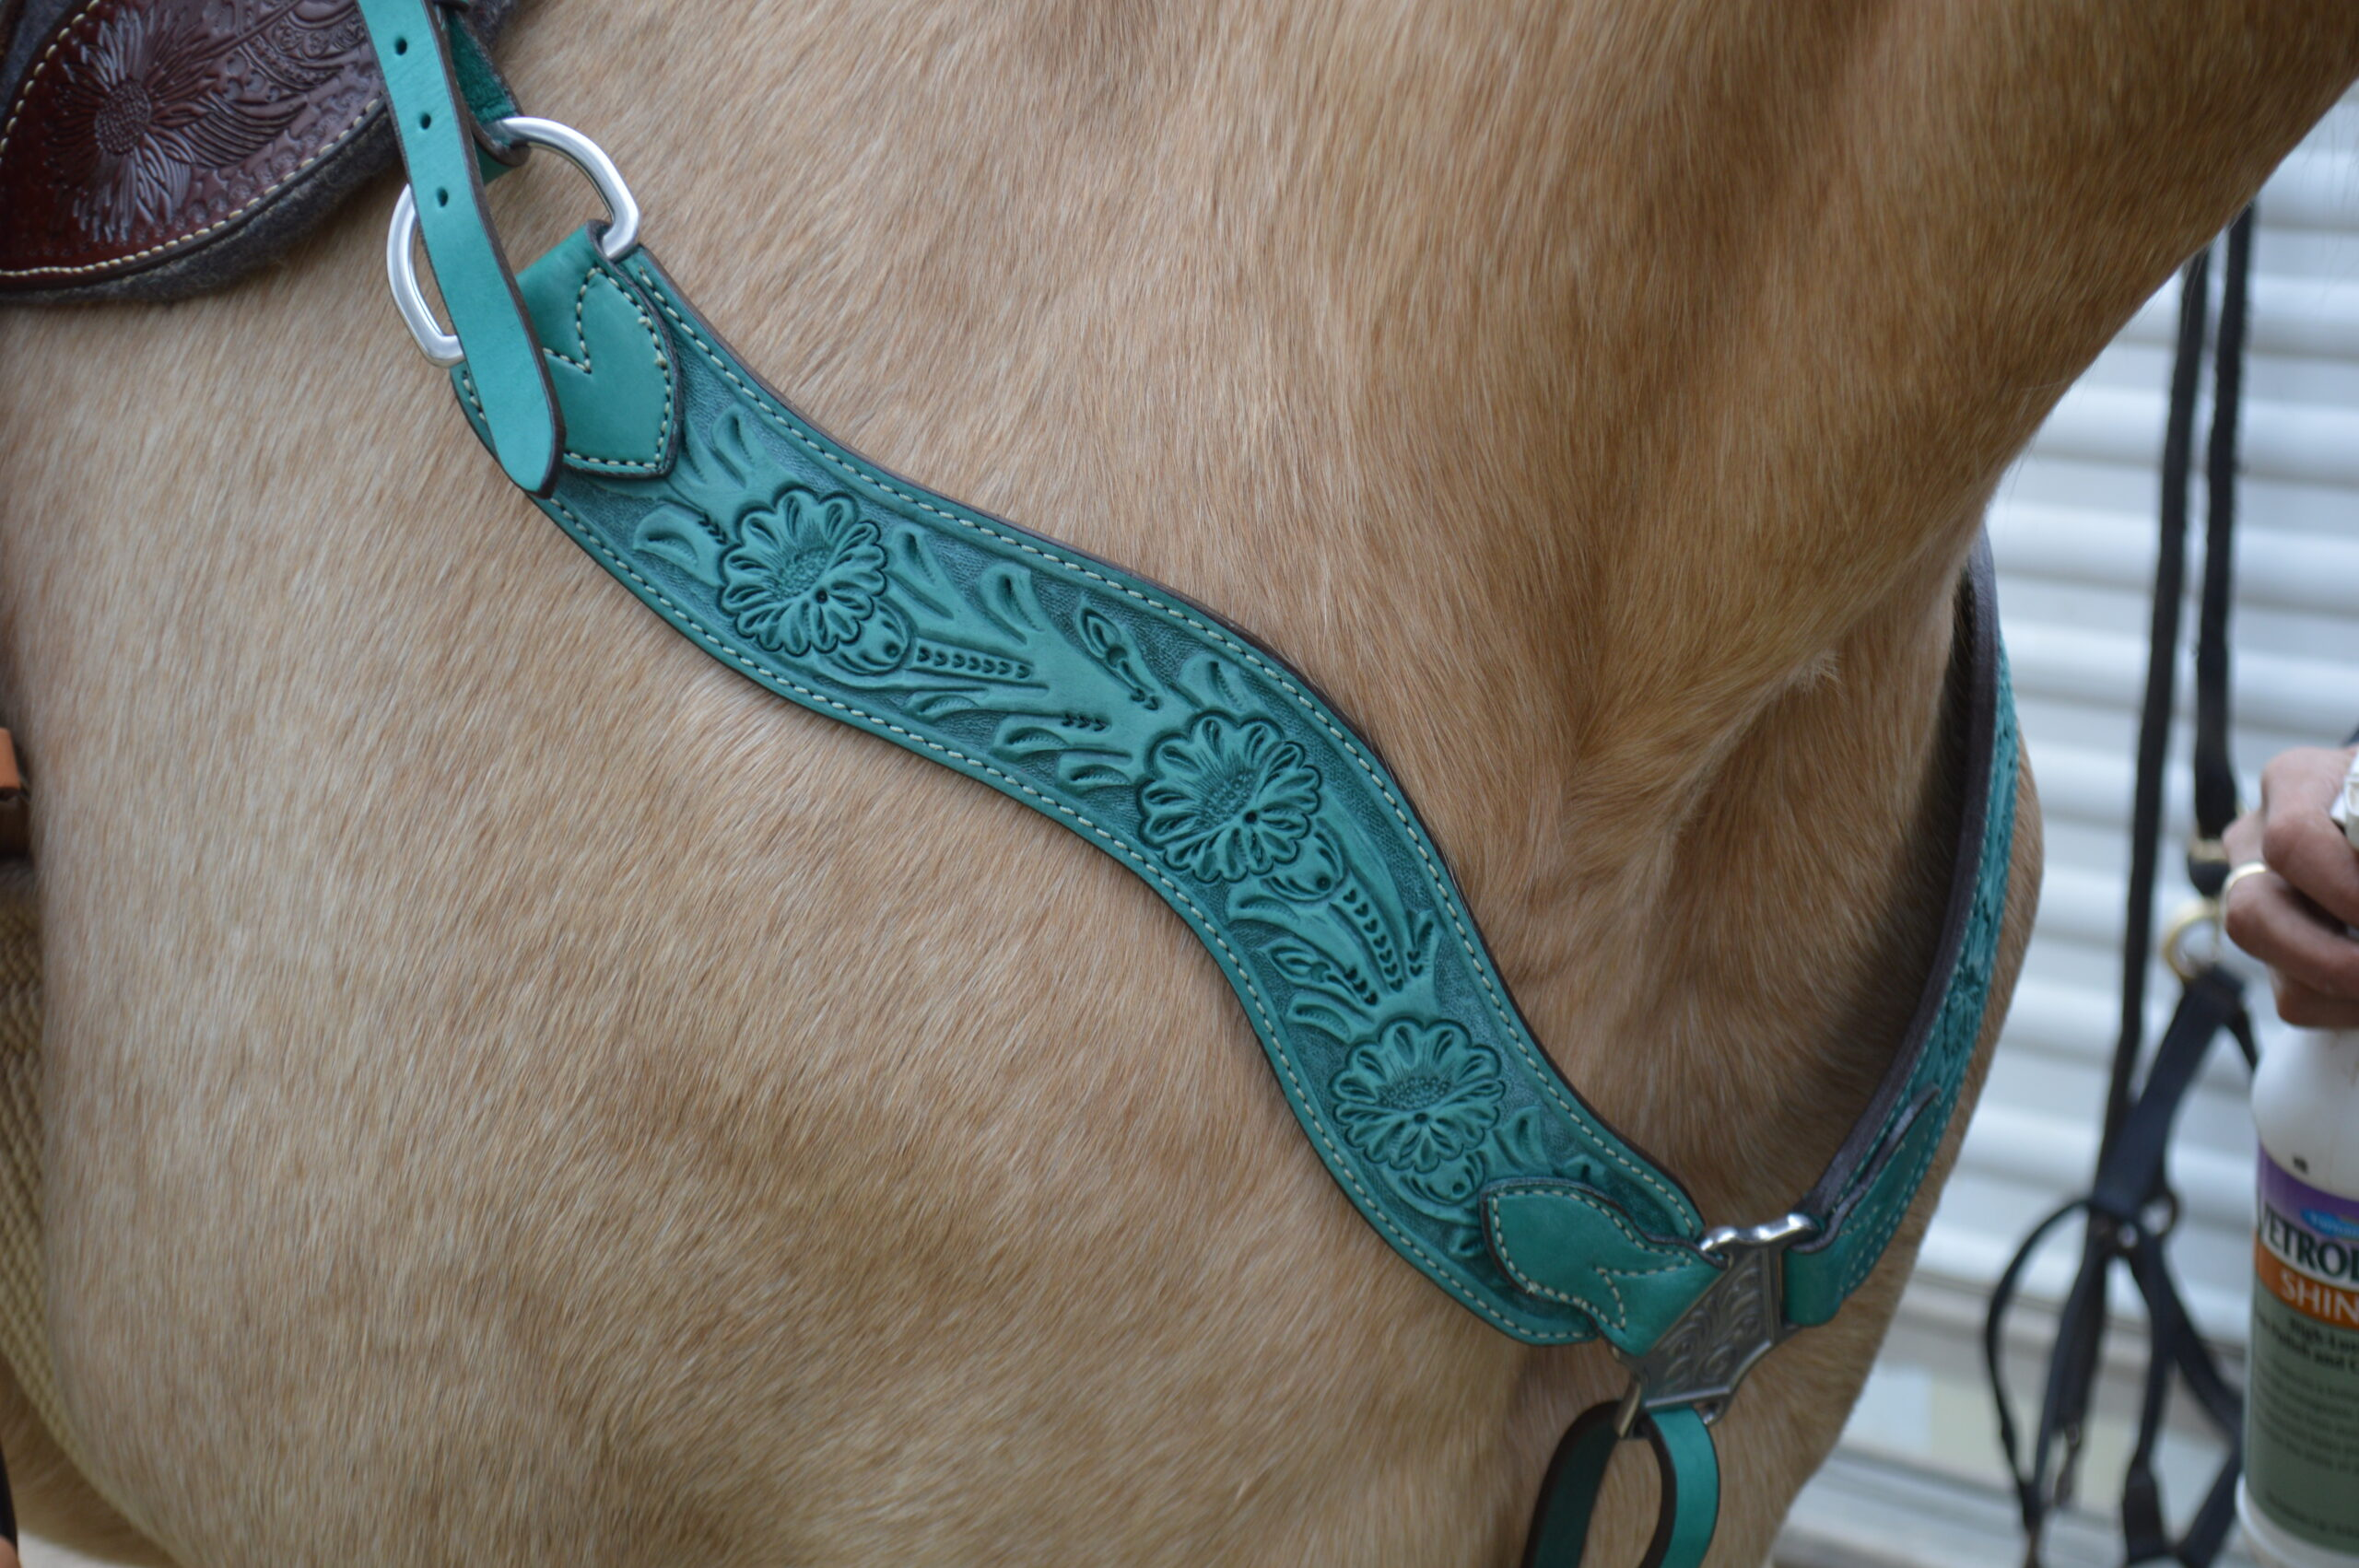 3017-QS 2-1/2in wave breast collar; Turquoise Leather w/ Floral Tooling